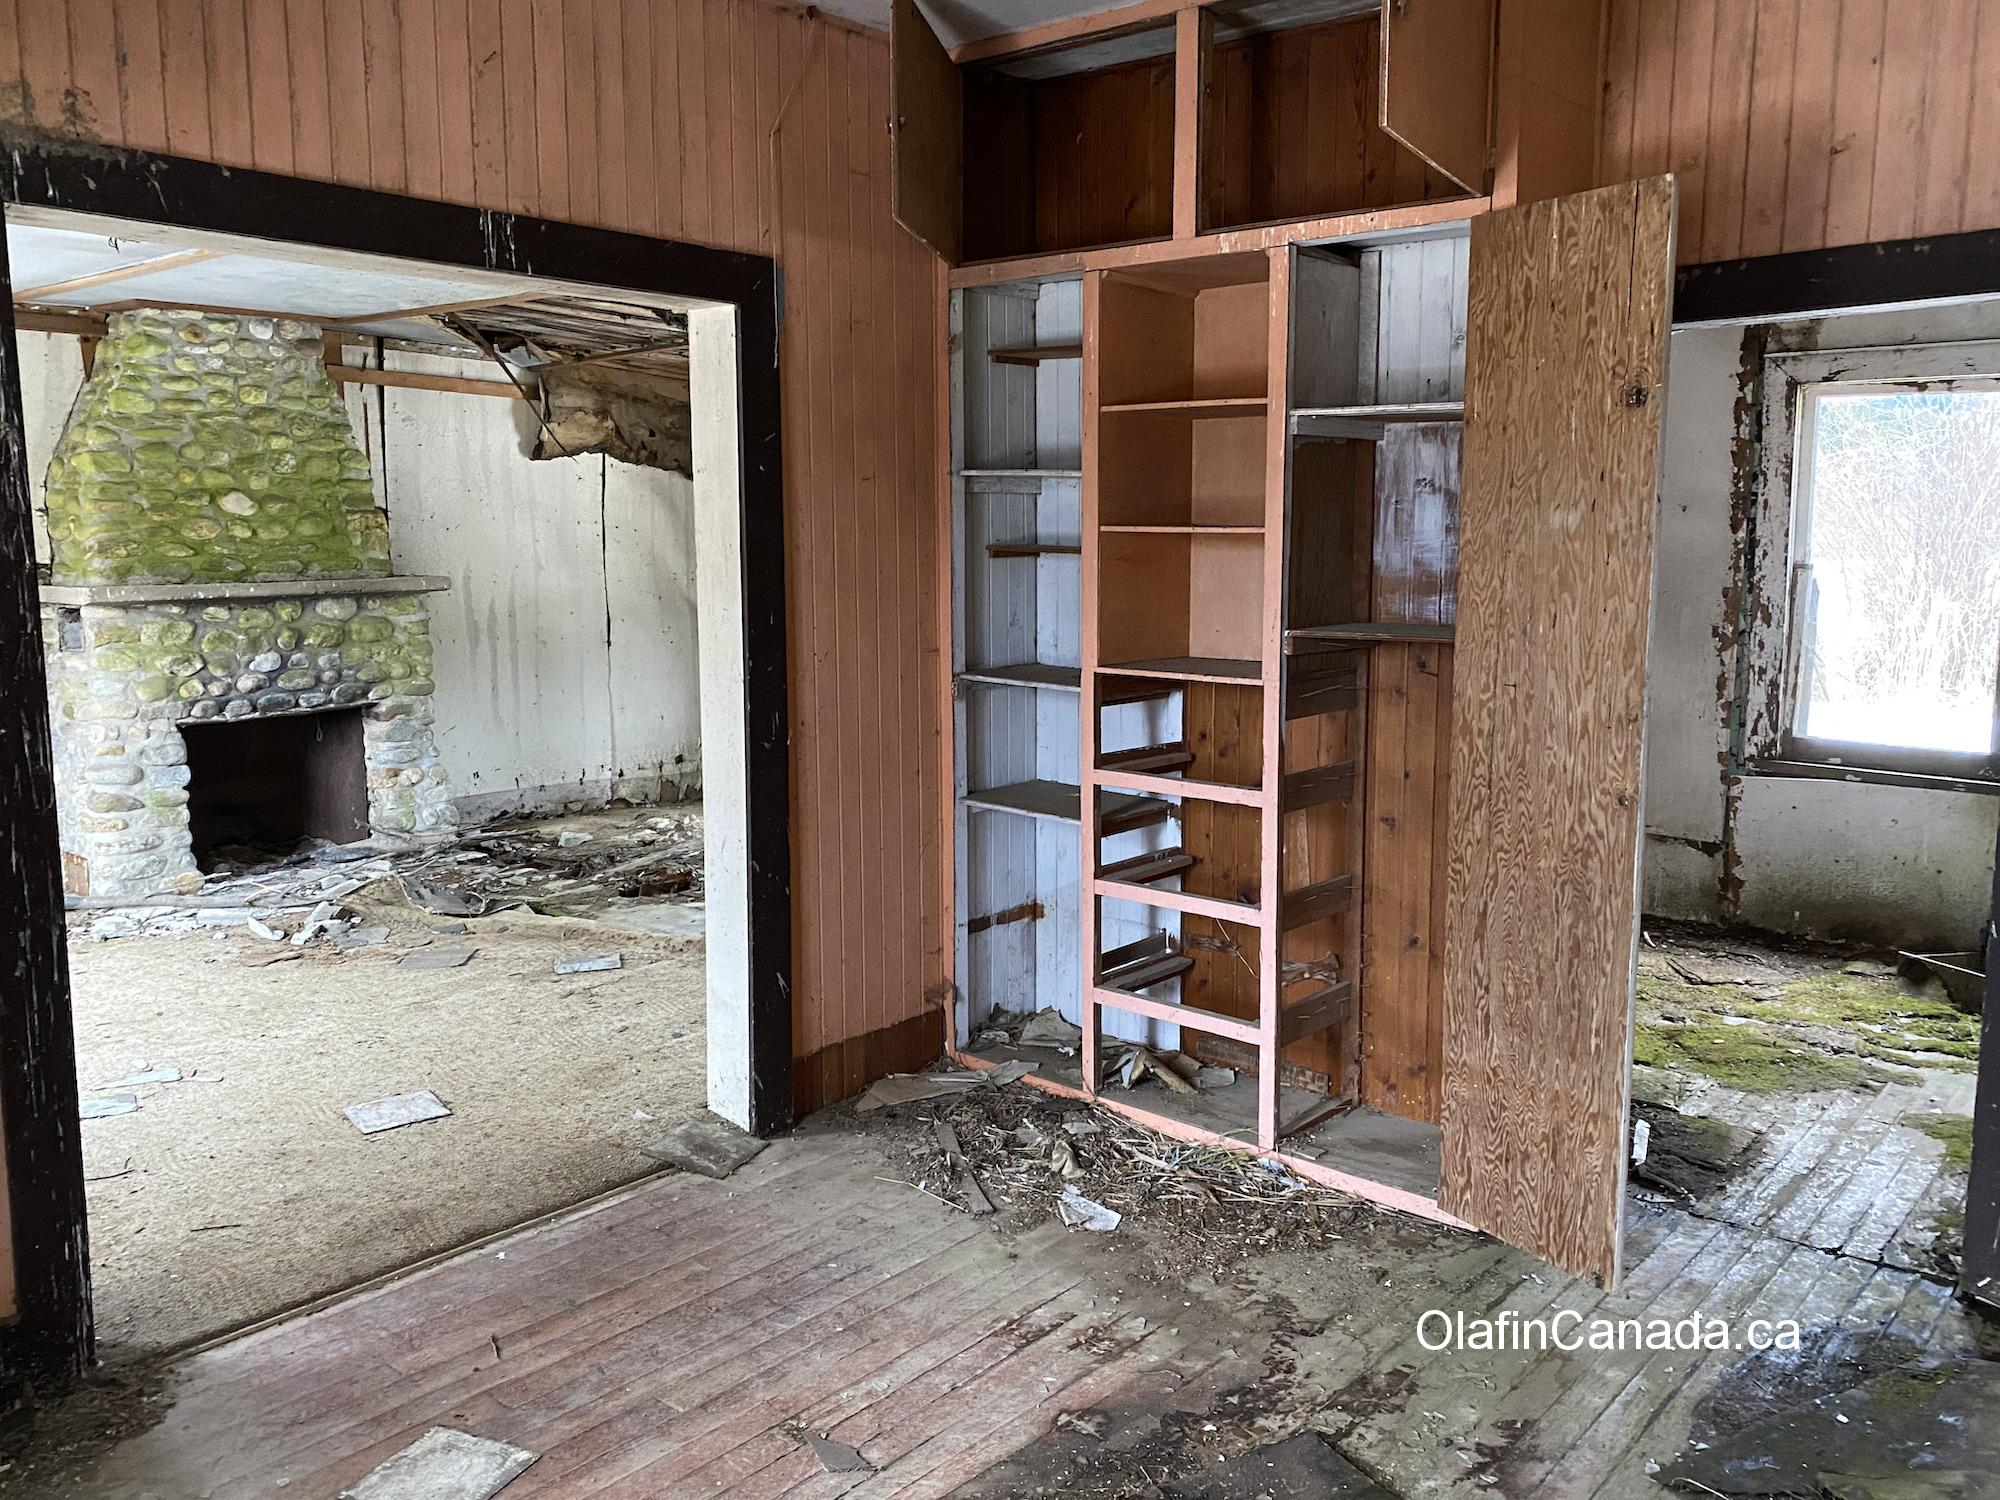 Fireplace inside abandoned home of the Helset family in Upper Clearwater #olafincanada #britishcolumbia #discoverbc #abandonedbc #clearwater